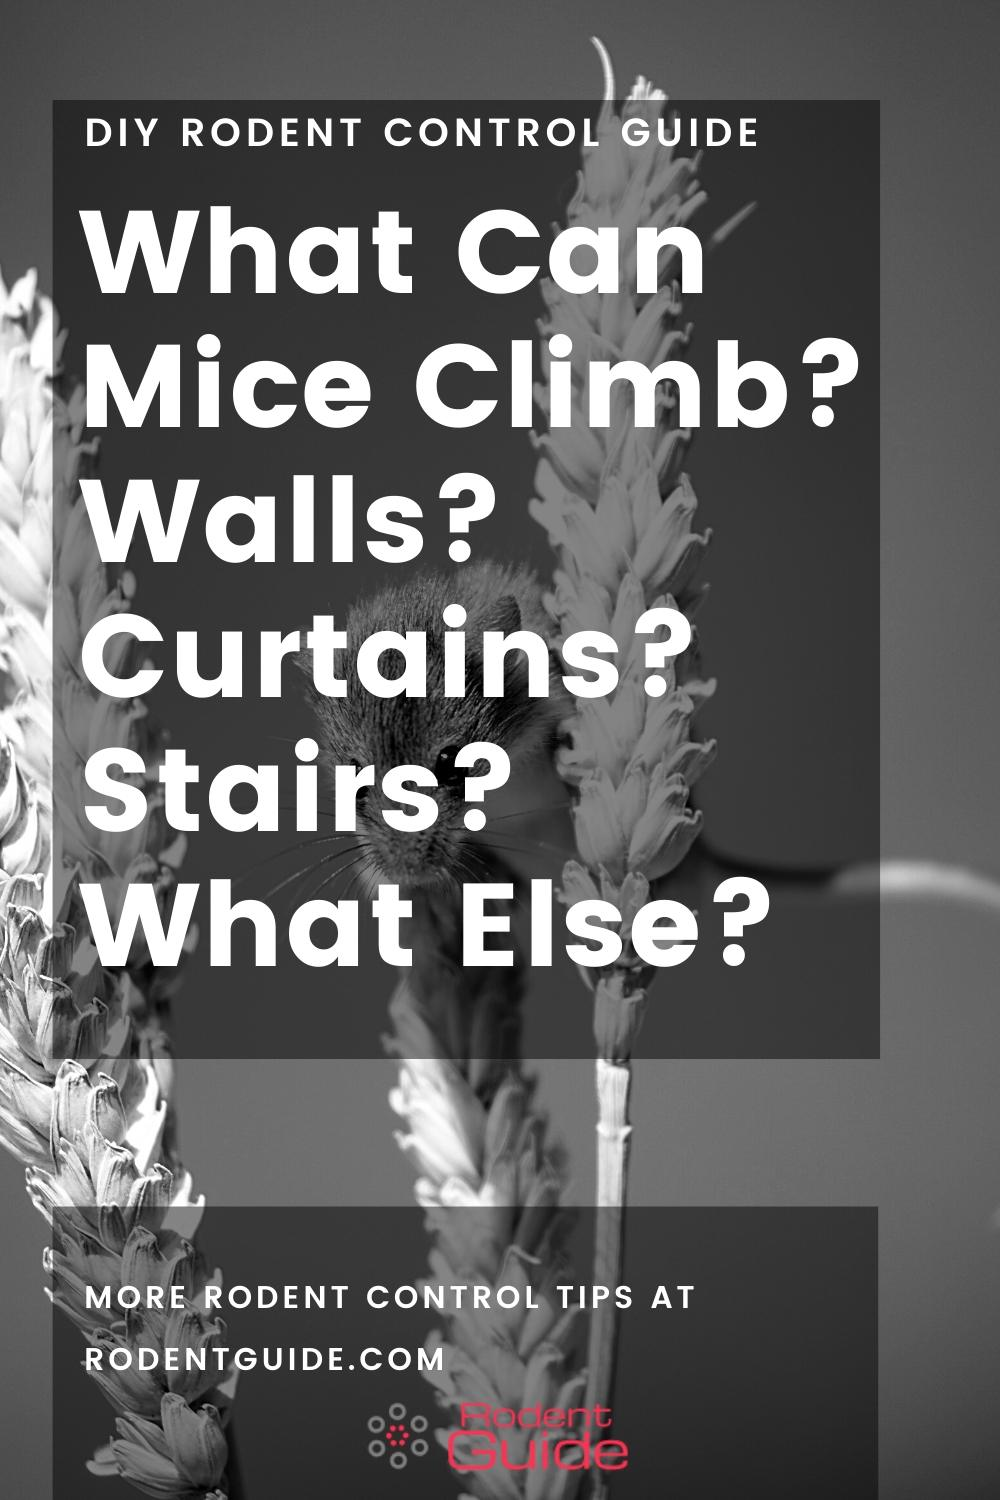 What Can Mice Climb